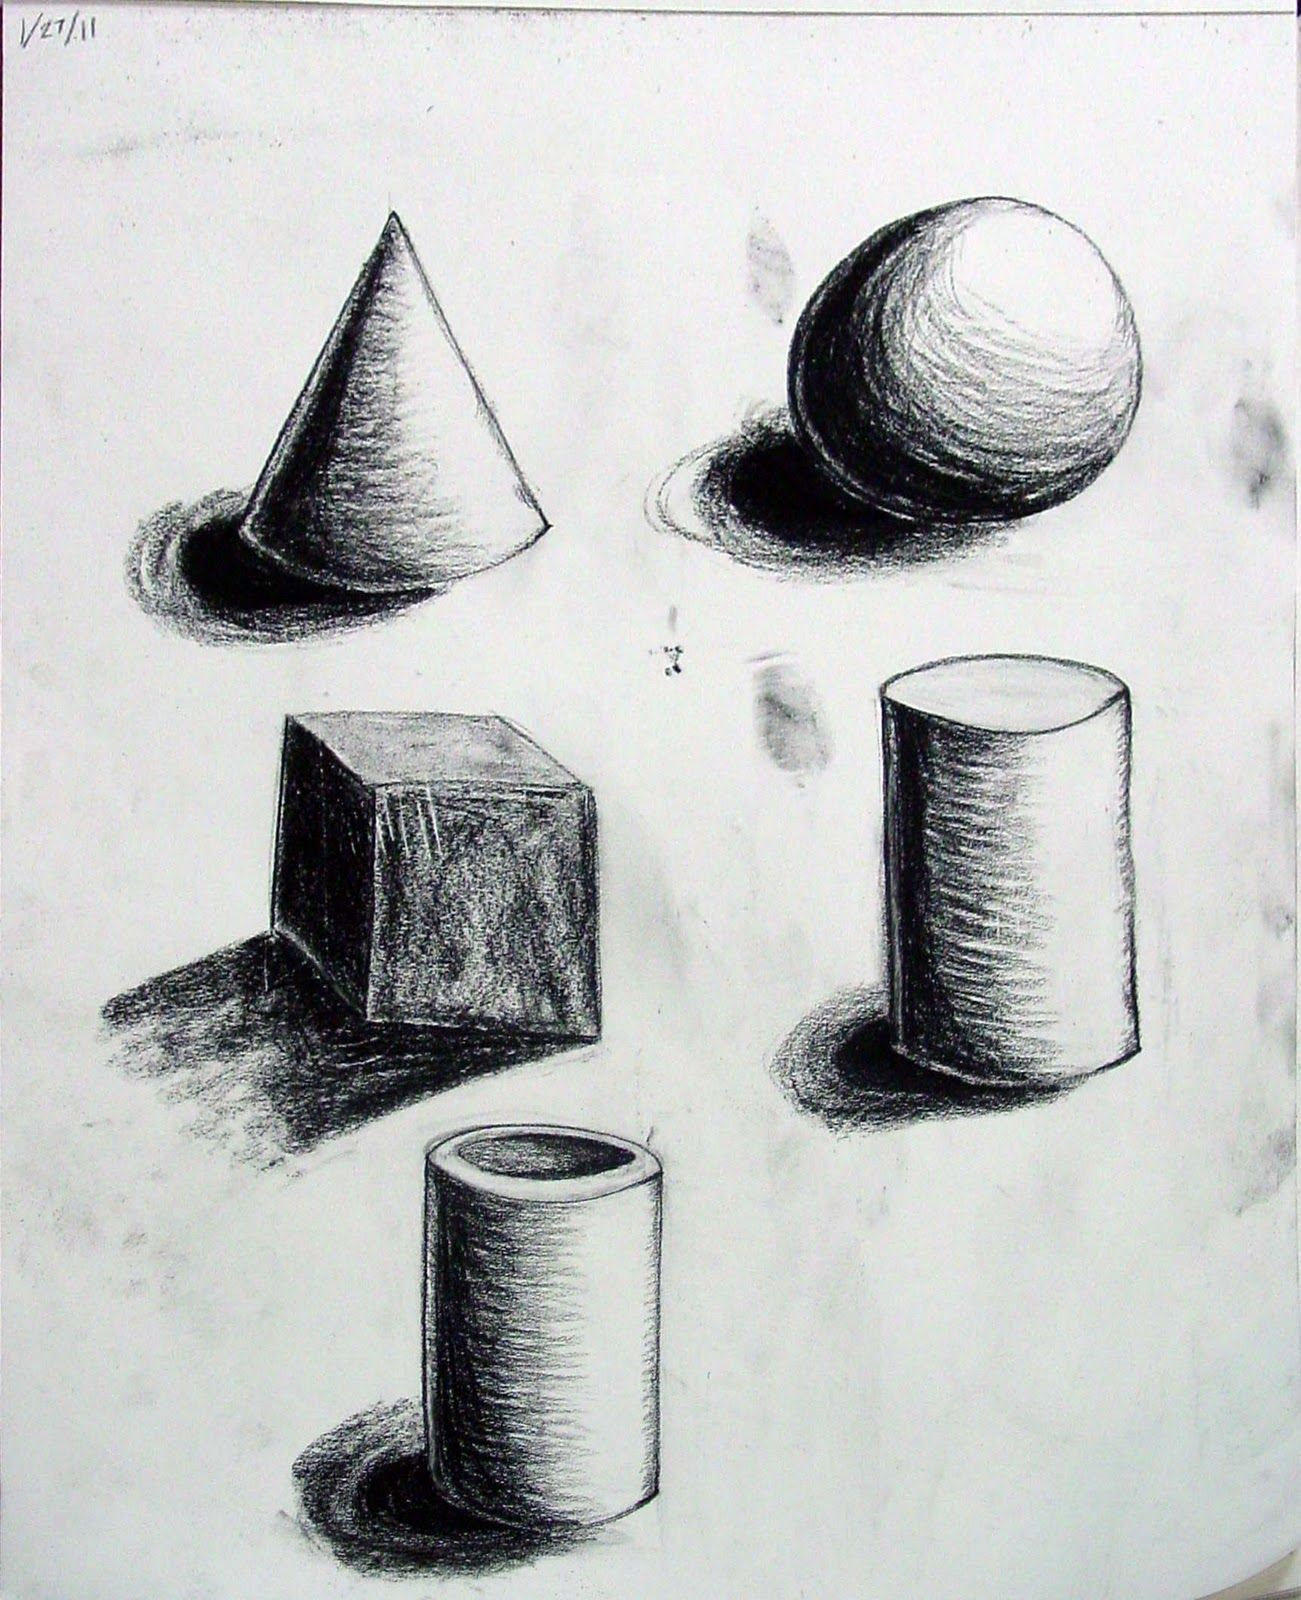 Form- These sketches of different shapes in 3D really bring out the ...